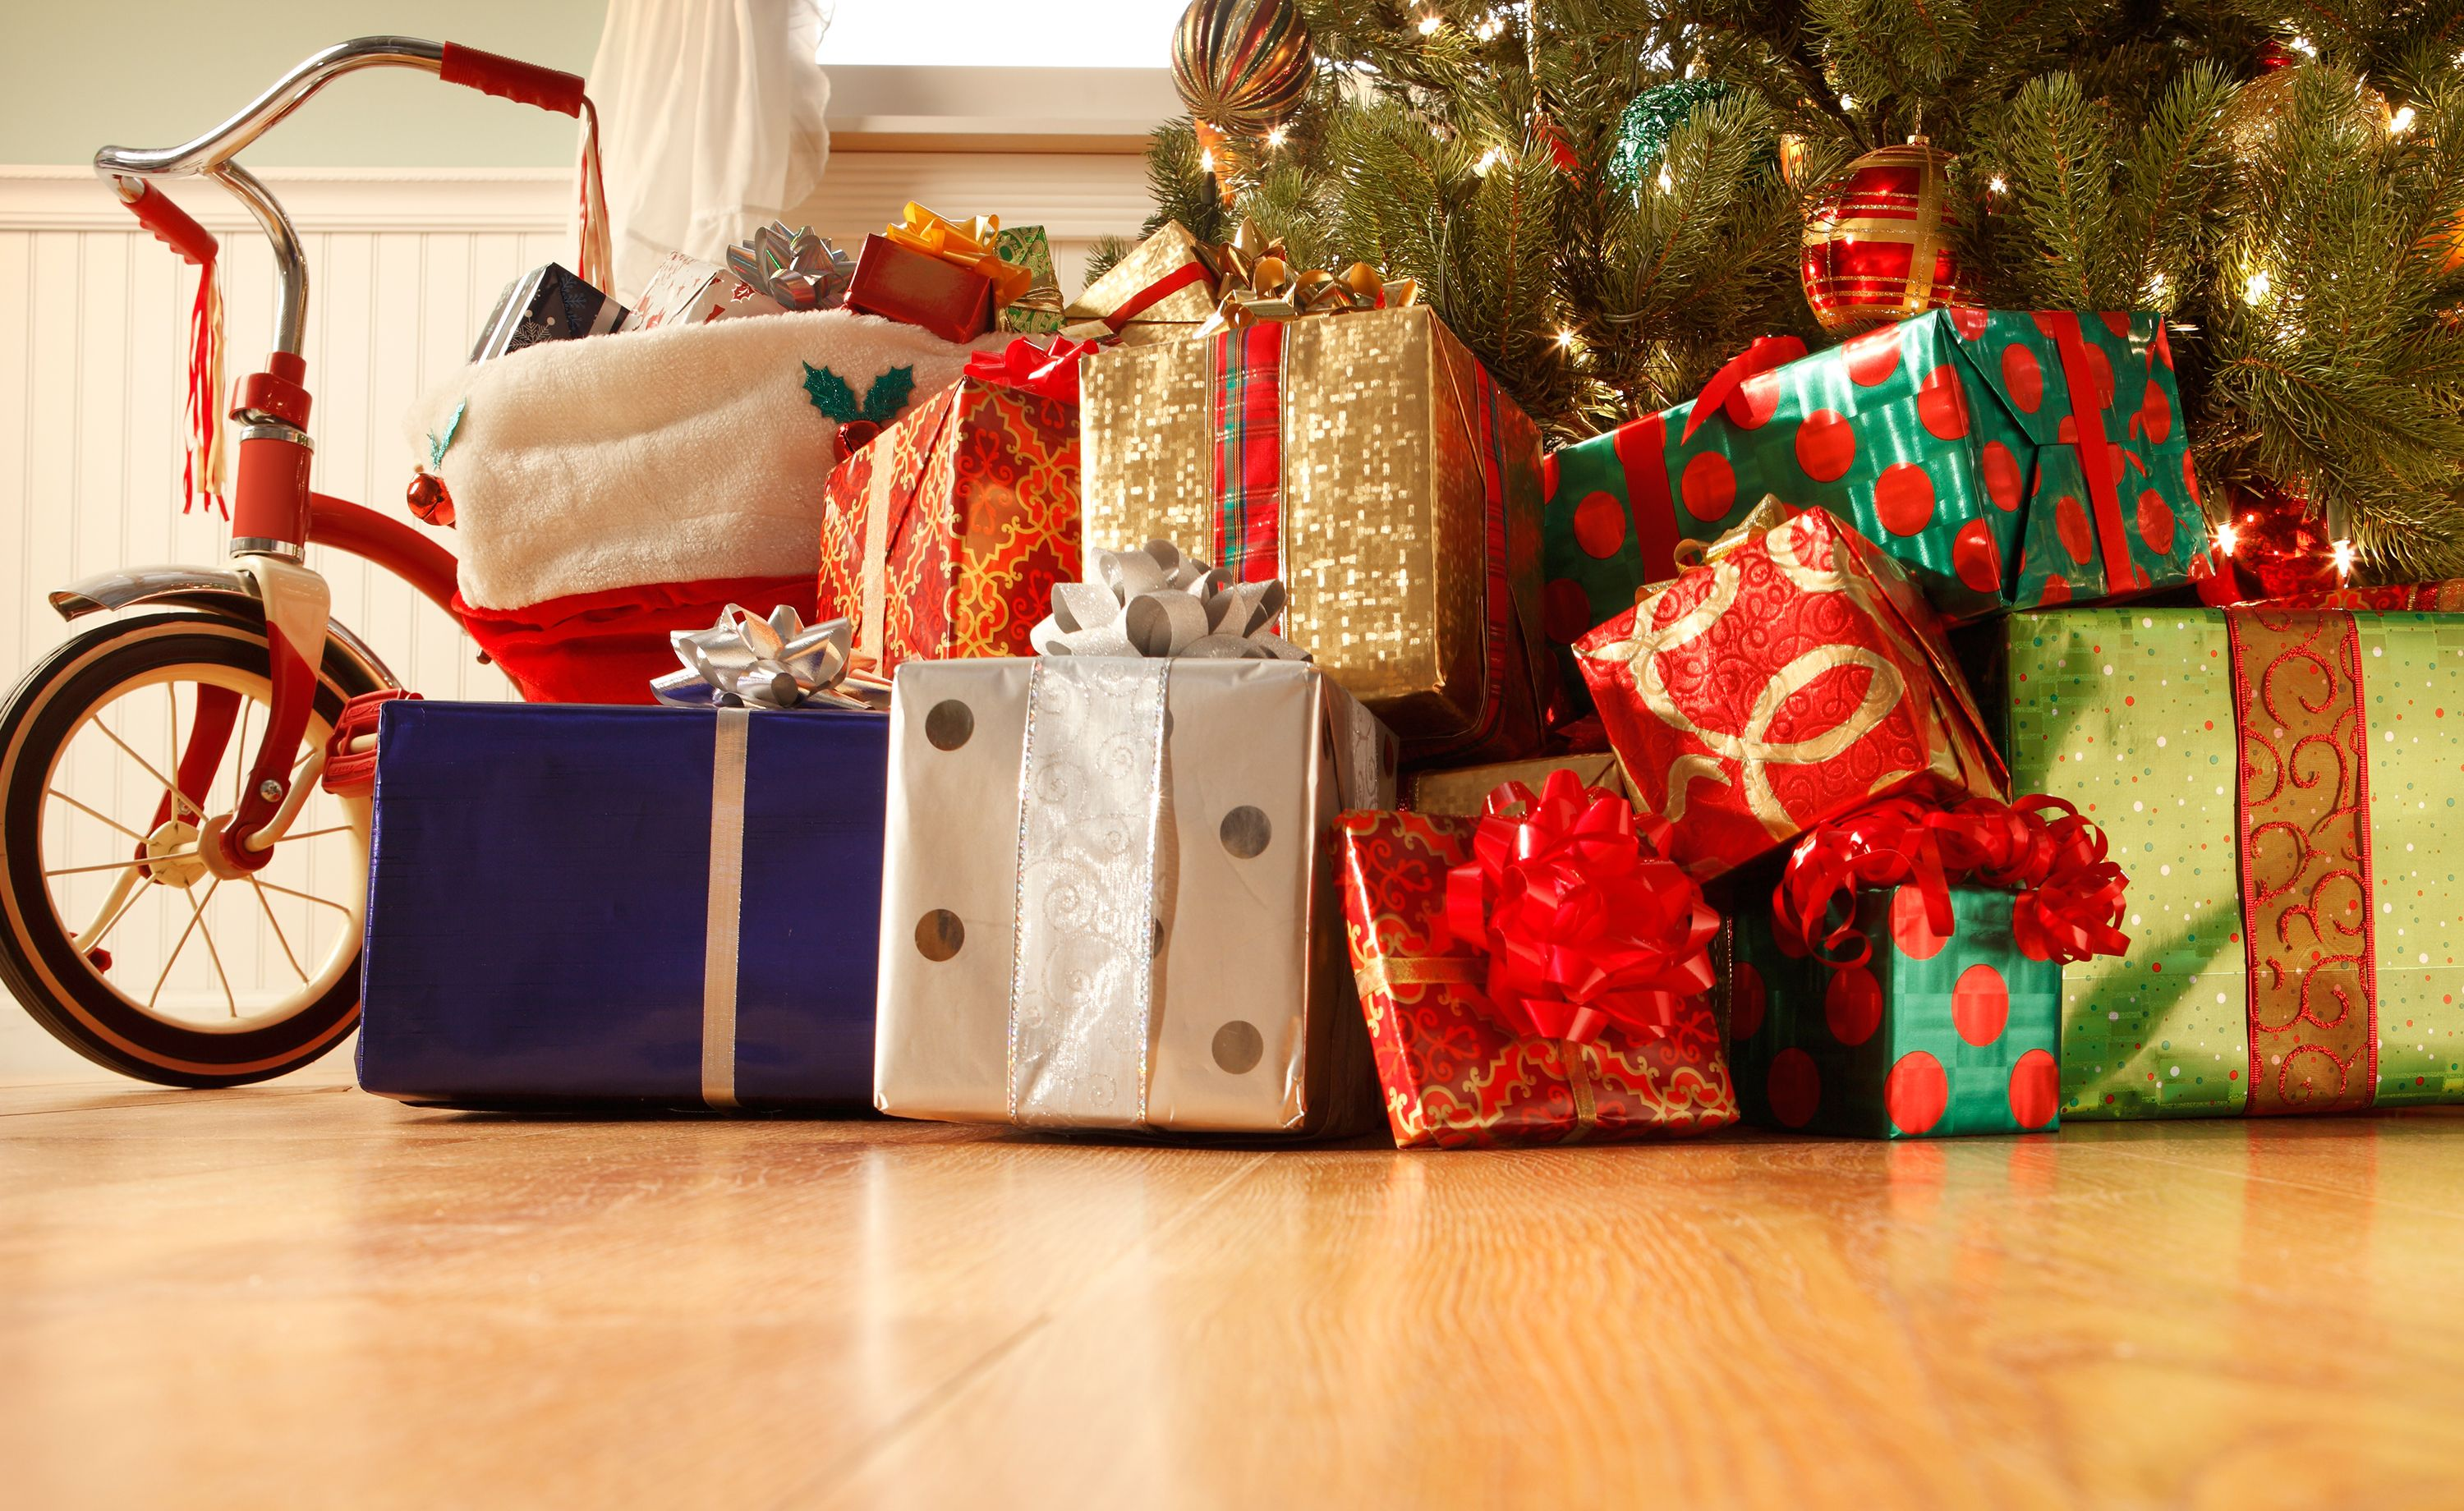 Christmas Presents Under Tree.Mumsnet User Sparks Debate About How Many Christmas Presents